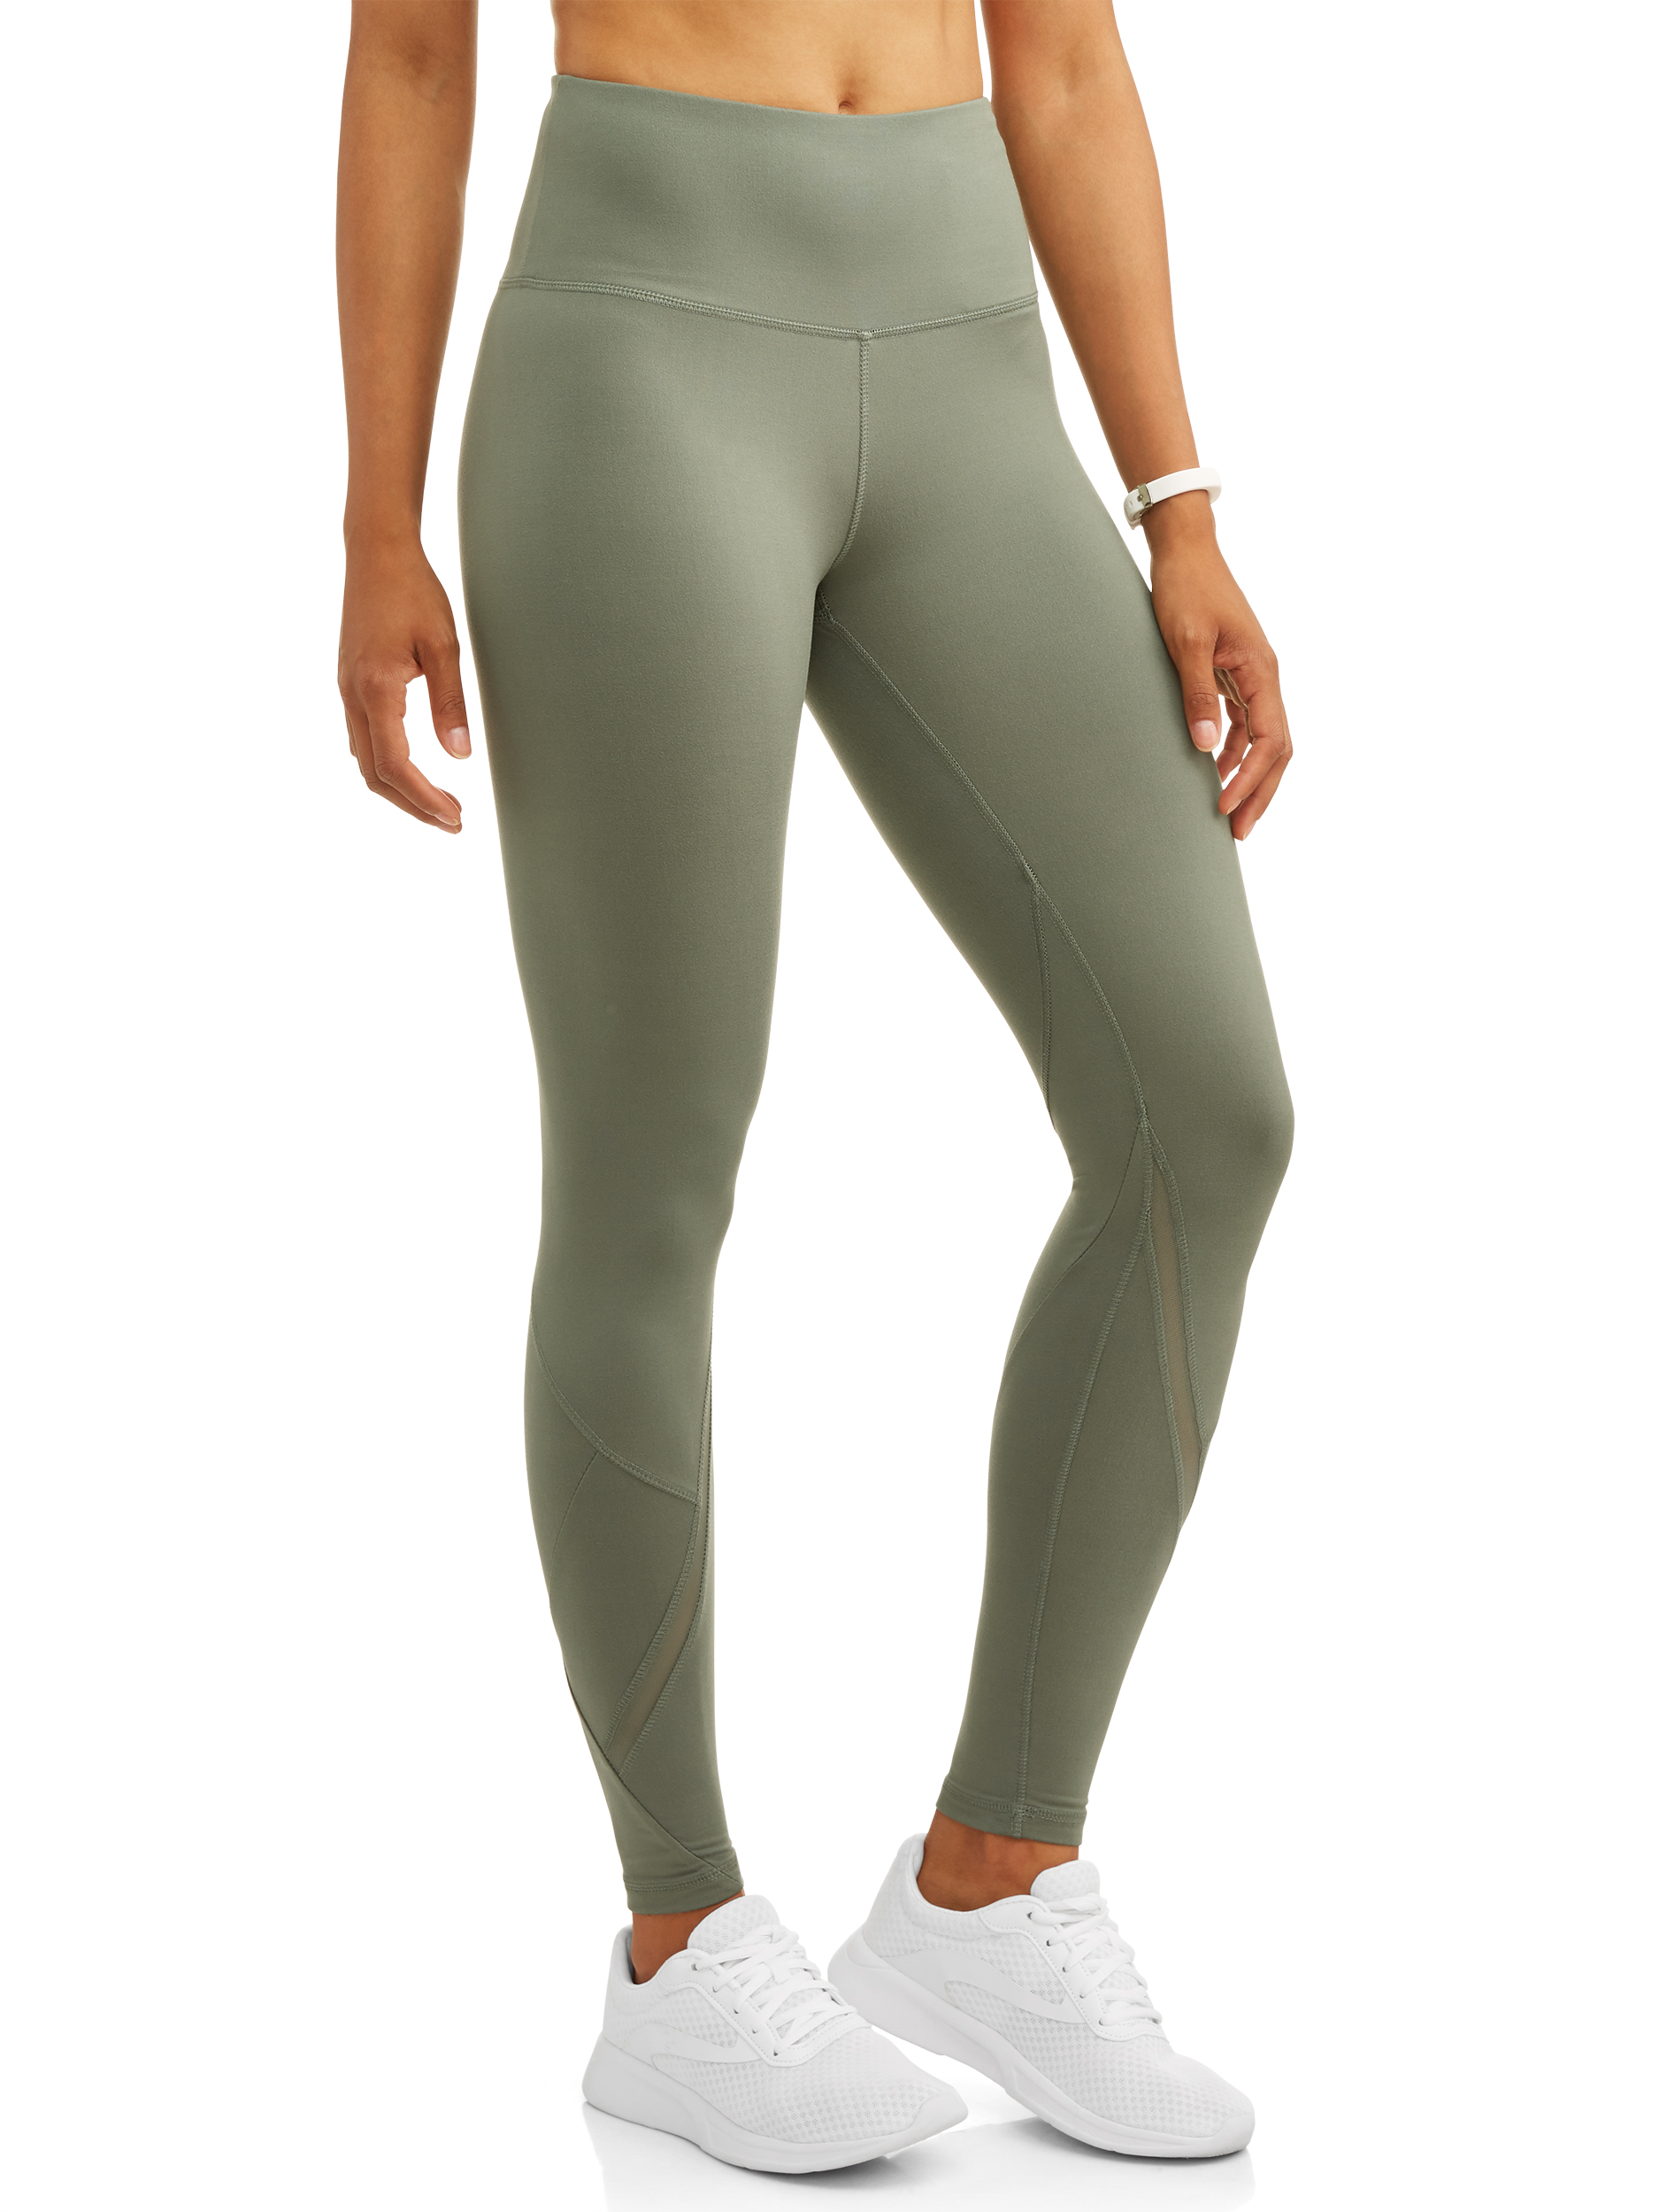 0e3b4f61dc8161 Danskin - women's premium active high rise performance legging with mesh  ankle - Walmart.com